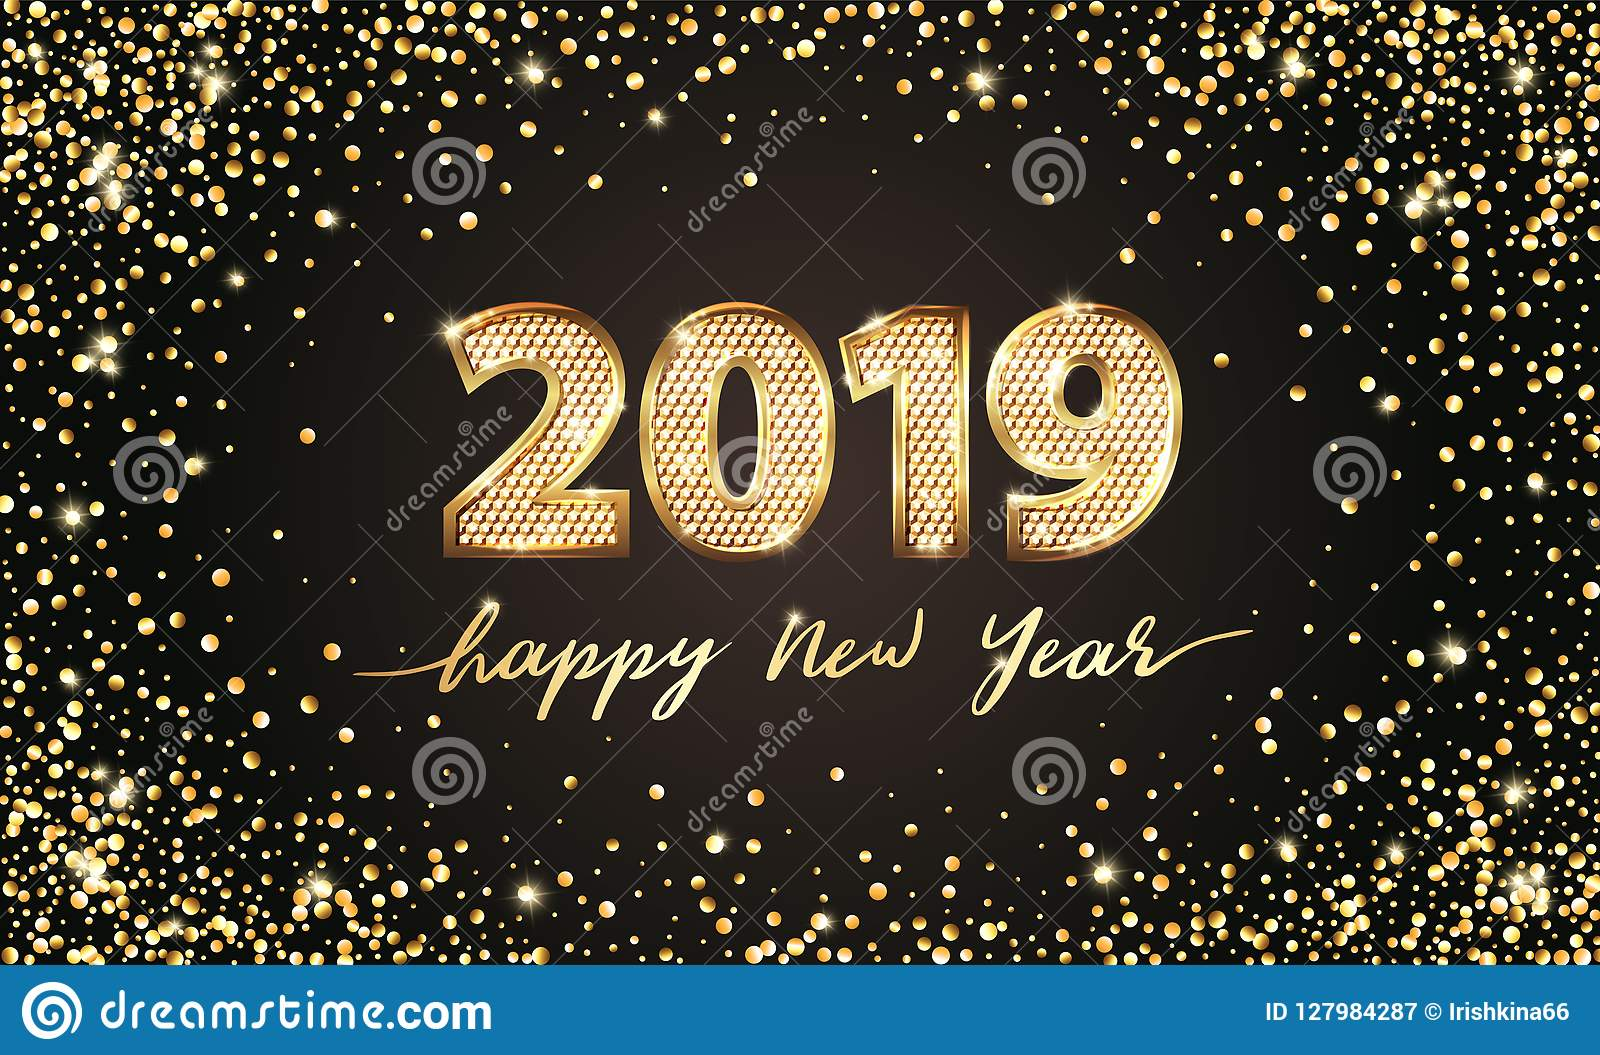 golden vector luxury text 2019 happy new year gold festive numbers design gold glitter